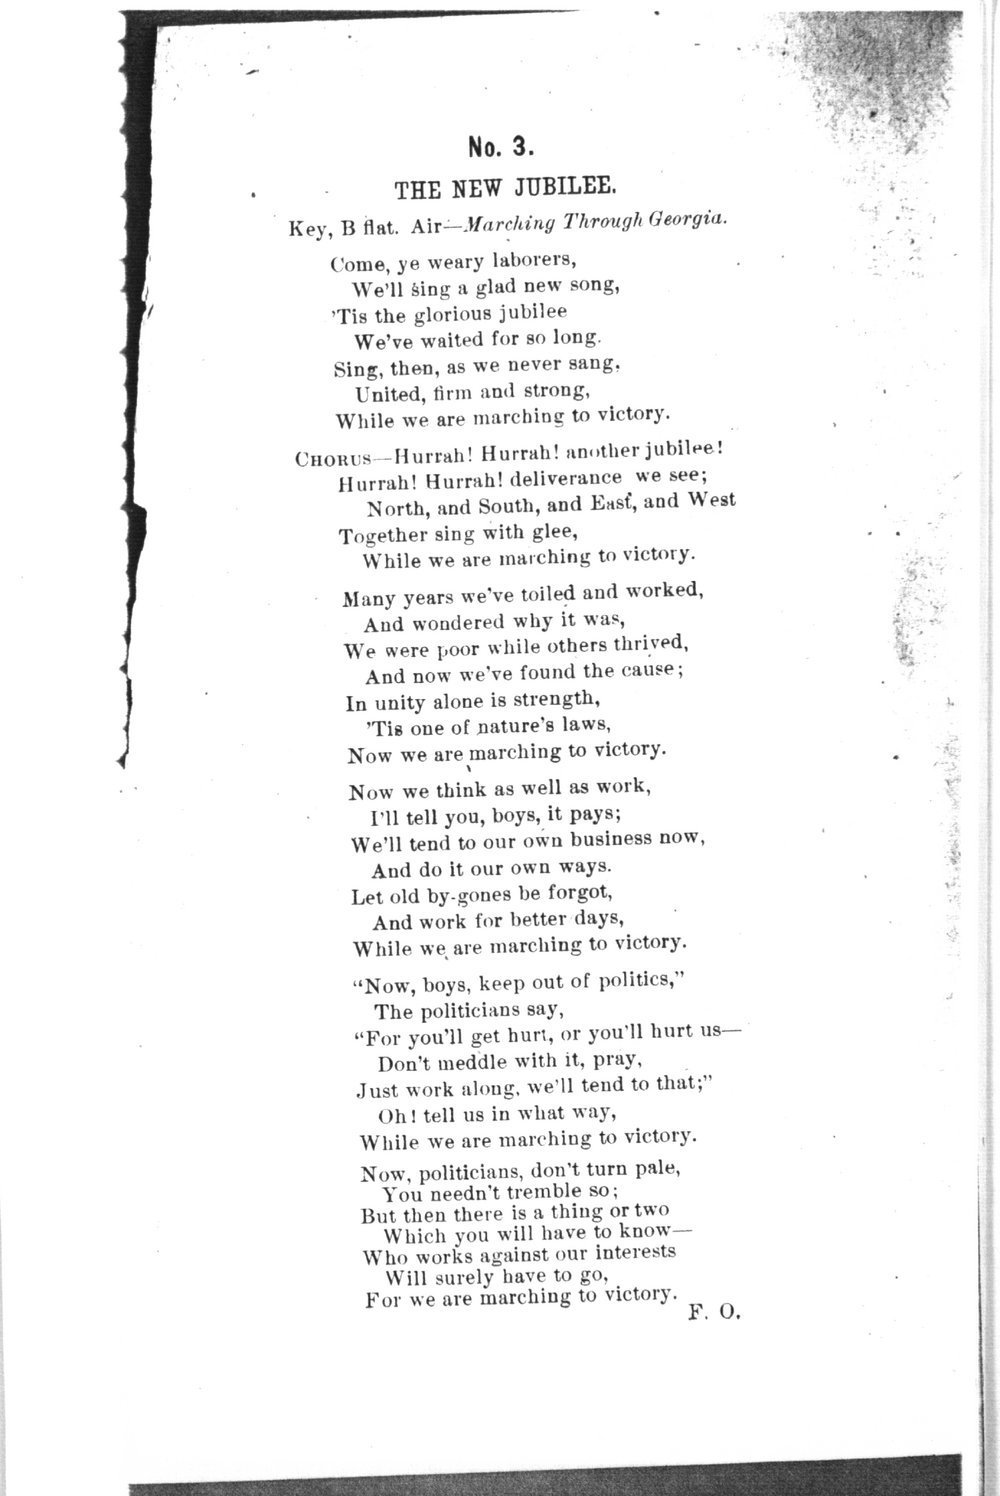 The mite:  Farmers' and Laborers' Union songs for national, state, county and subordinate unions - No. 3